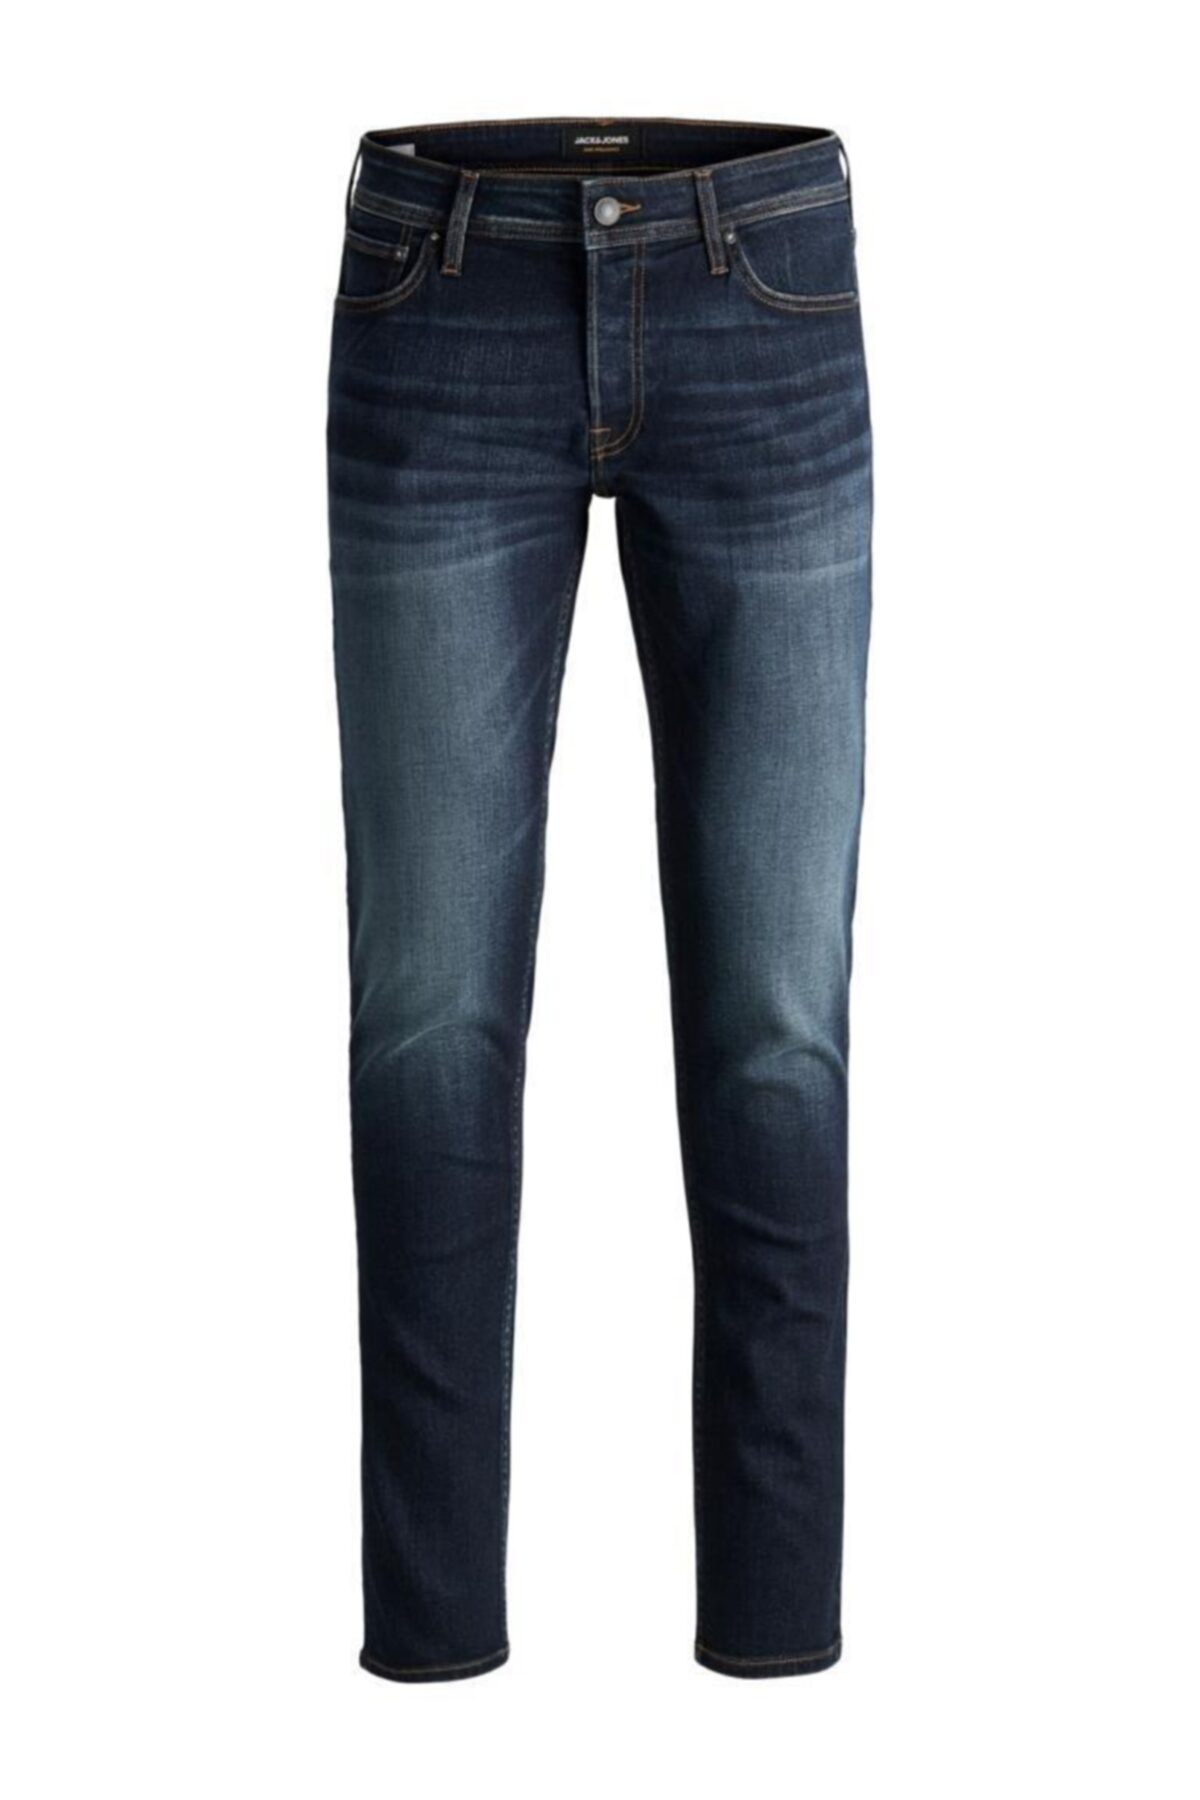 Jack & Jones Slim Jean - Glenn Orıgınal CJ 161 12164959 1